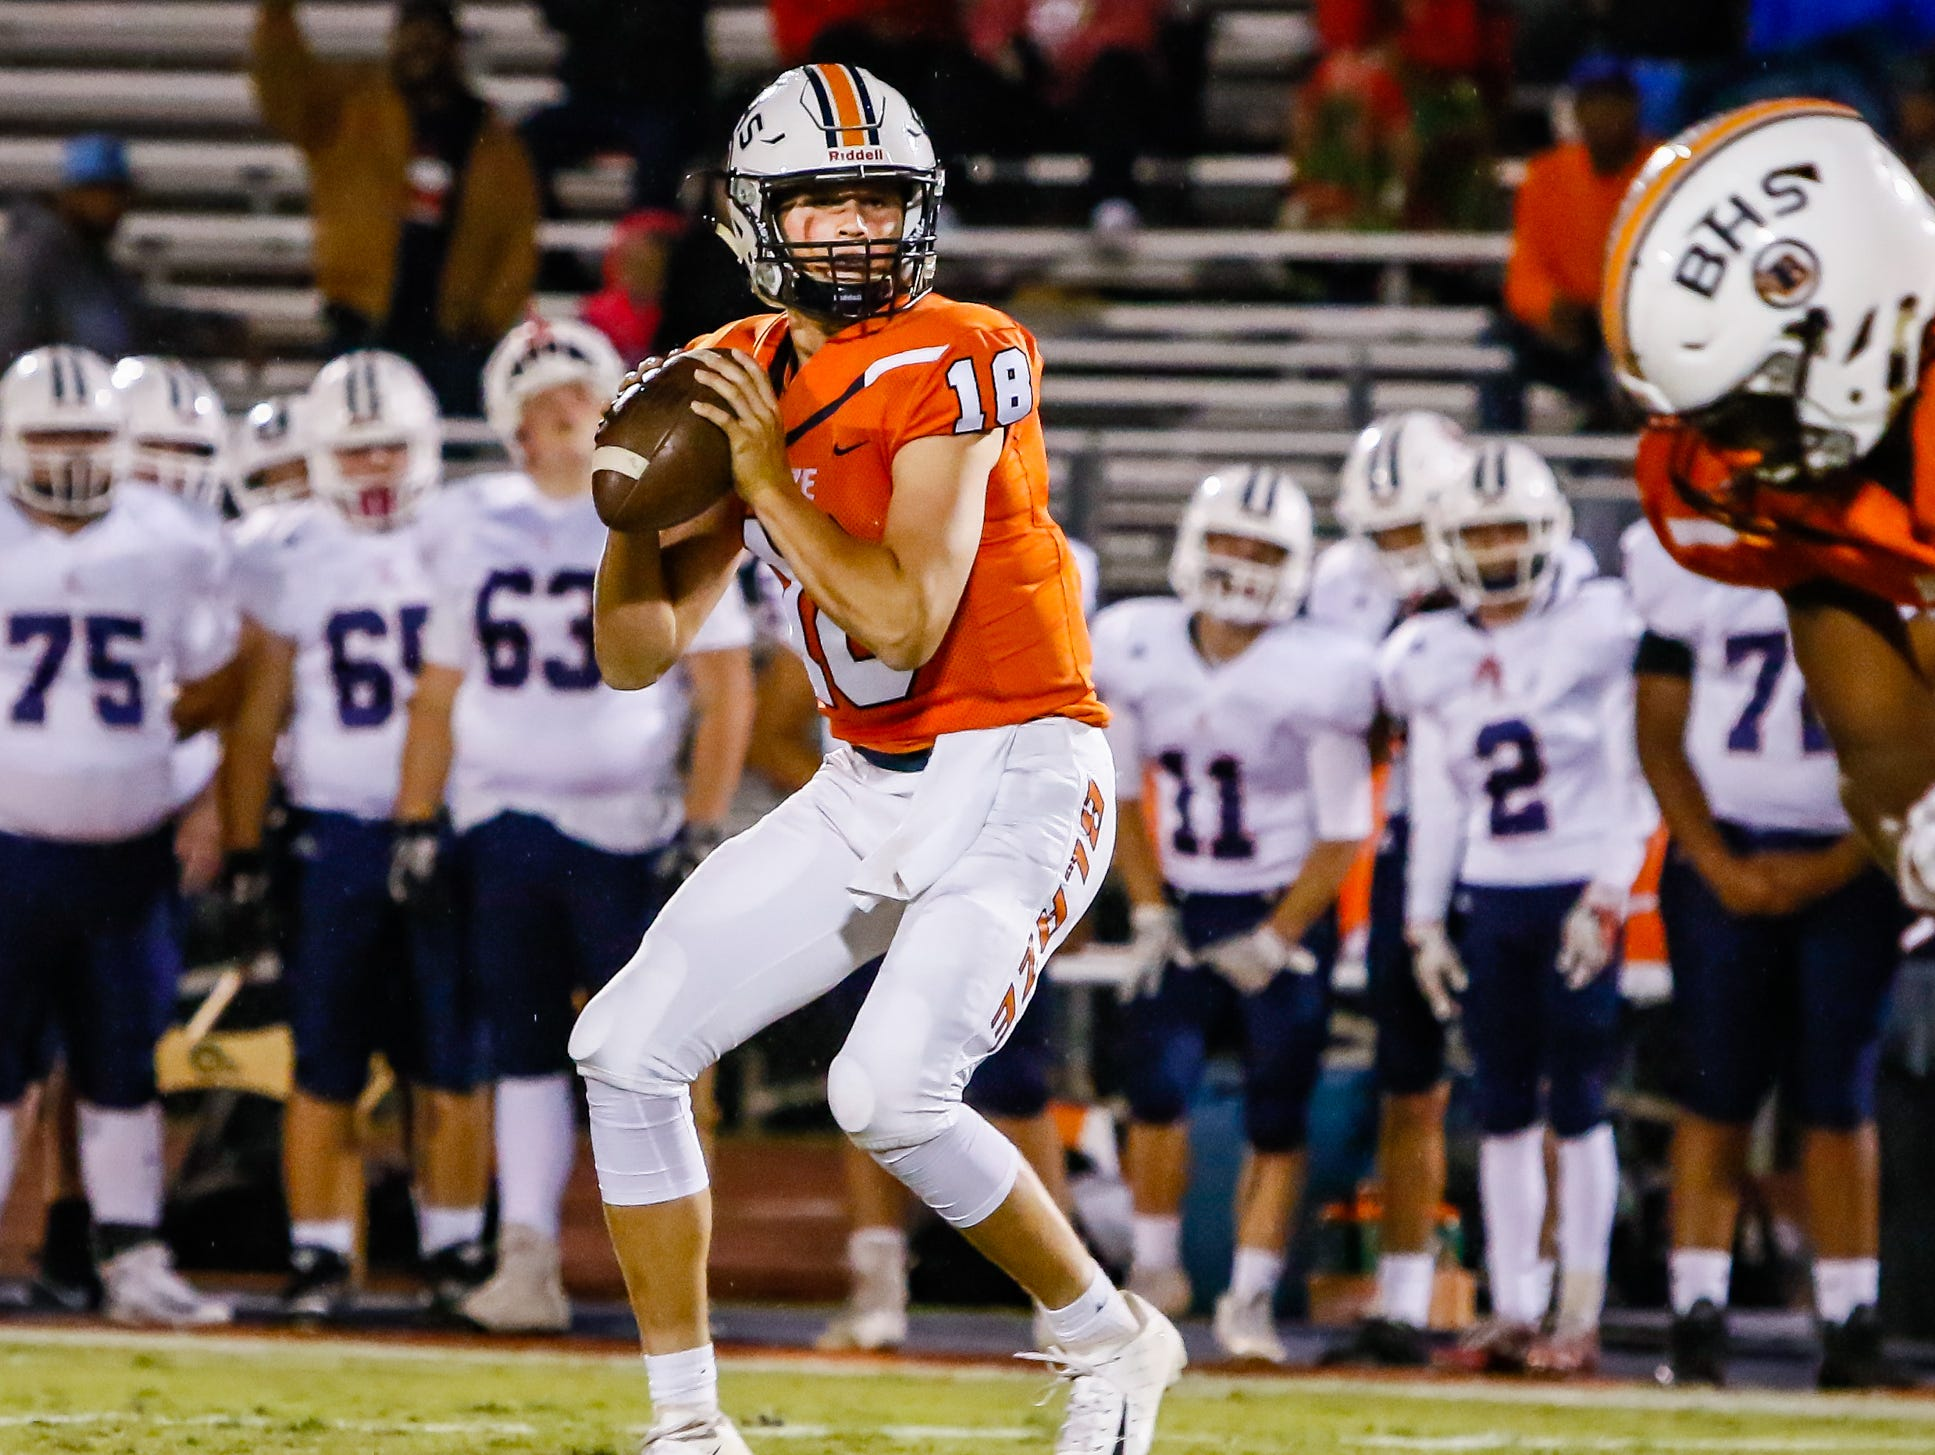 Drew Beam looks to pass in Blackman's 45-14 win over Cookeville.